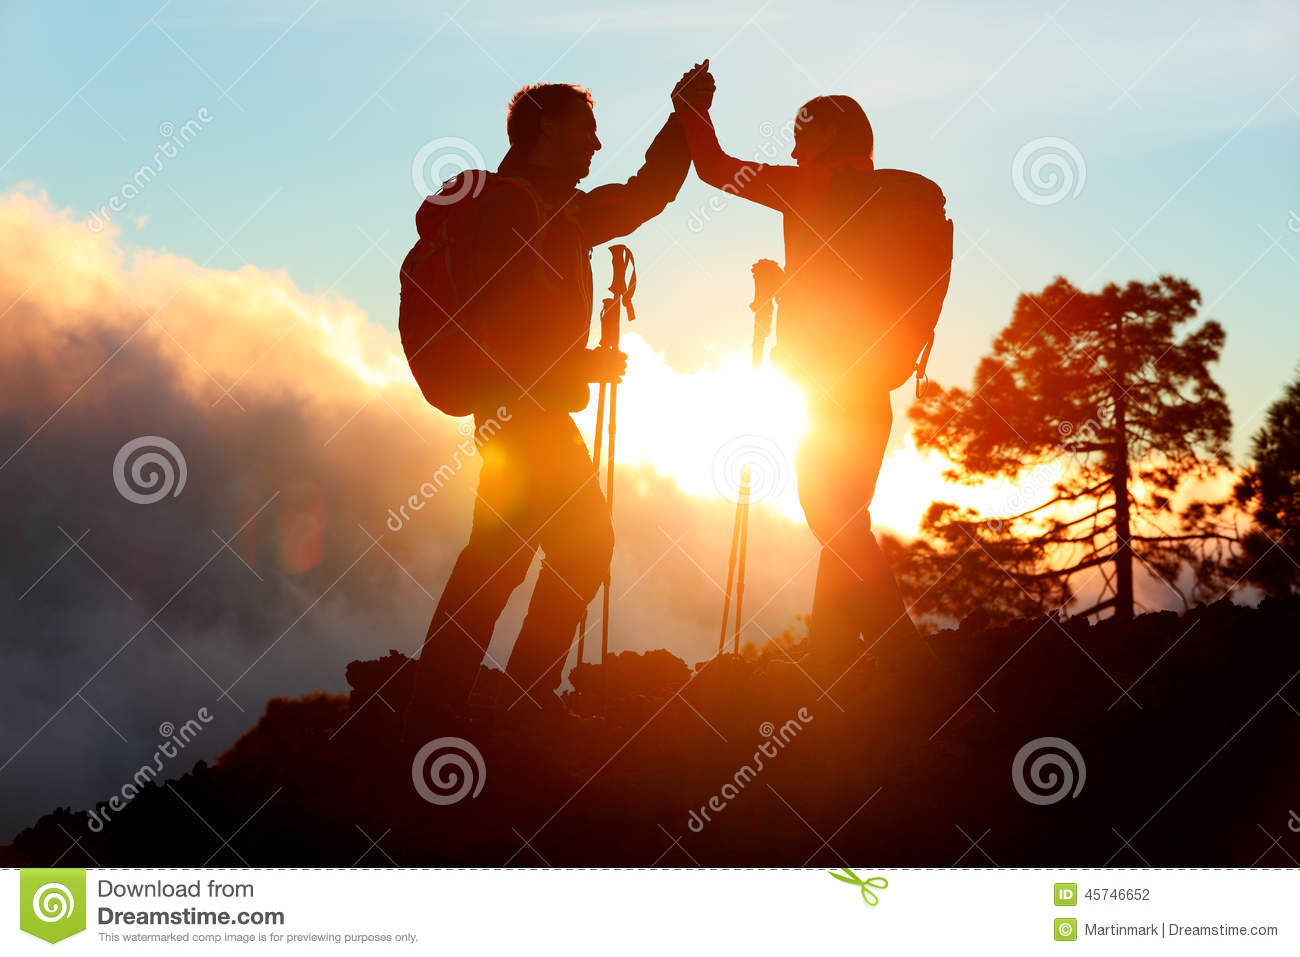 Download Hiking People Reaching Summit Top High Five Stock Photo - Image of adventure, goal: 45746652